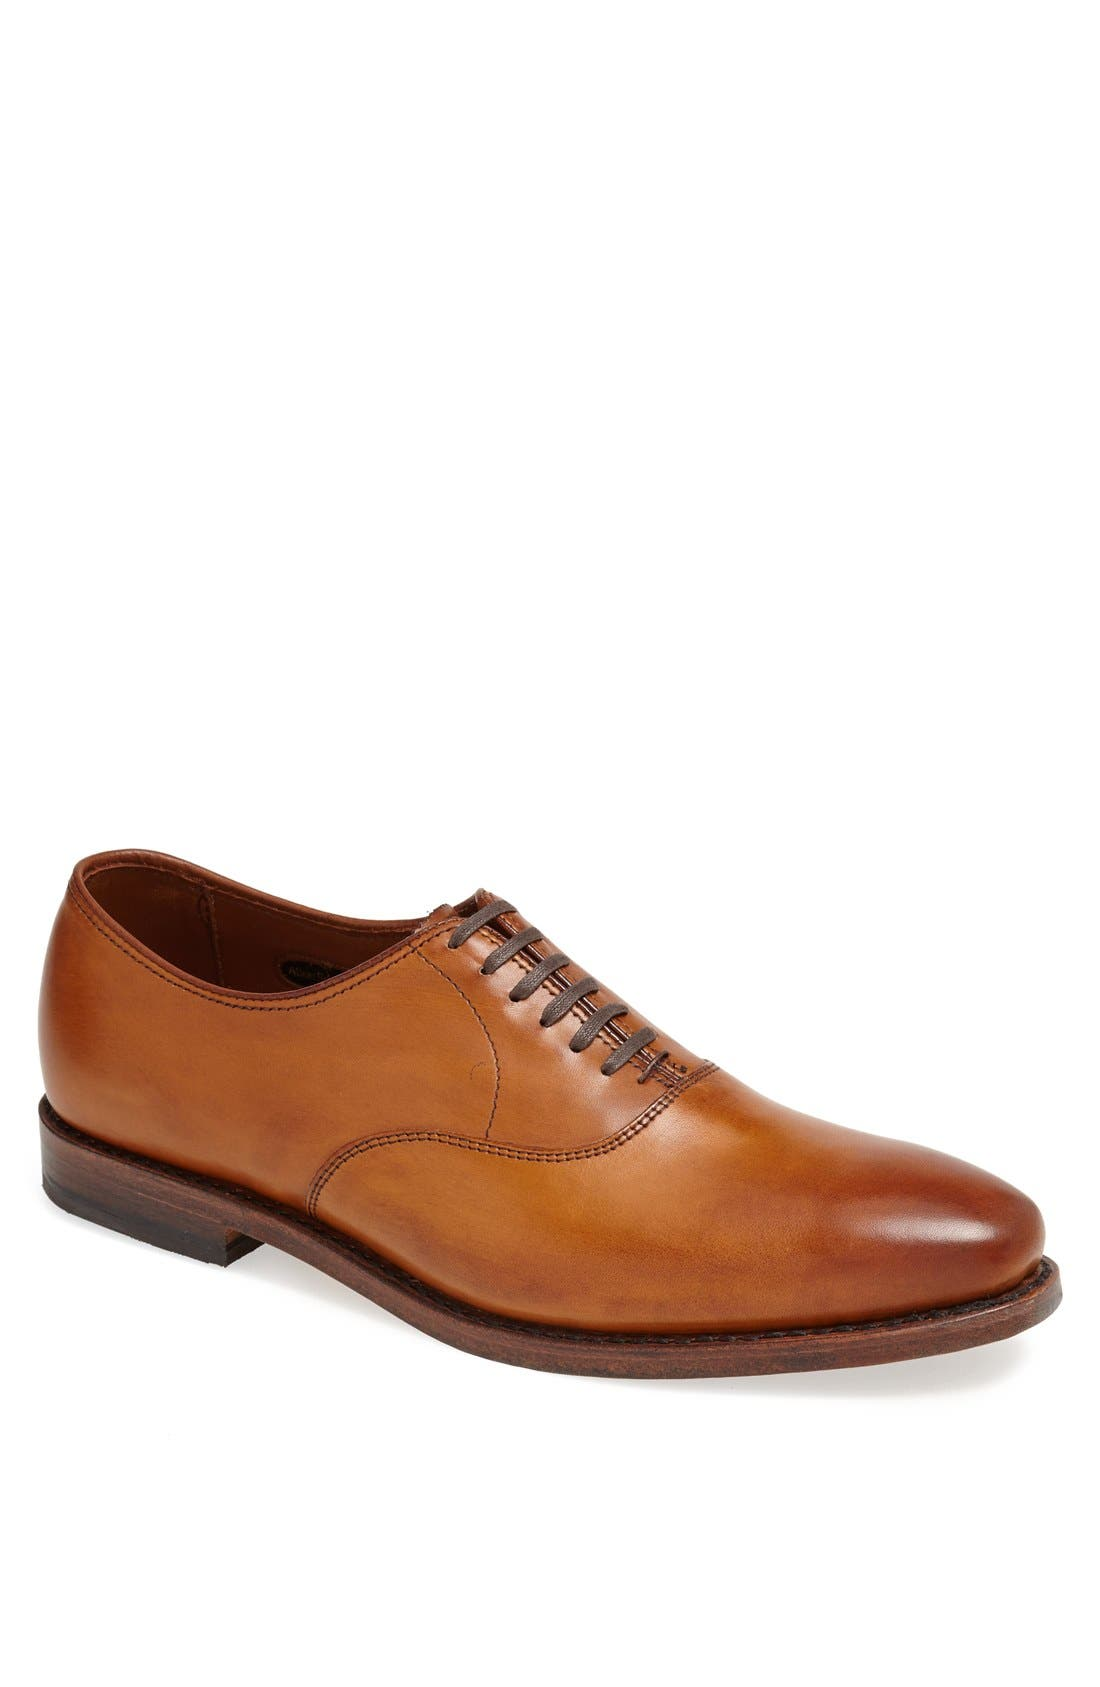 ALLEN EDMONDS Carlyle Plain Toe Oxford